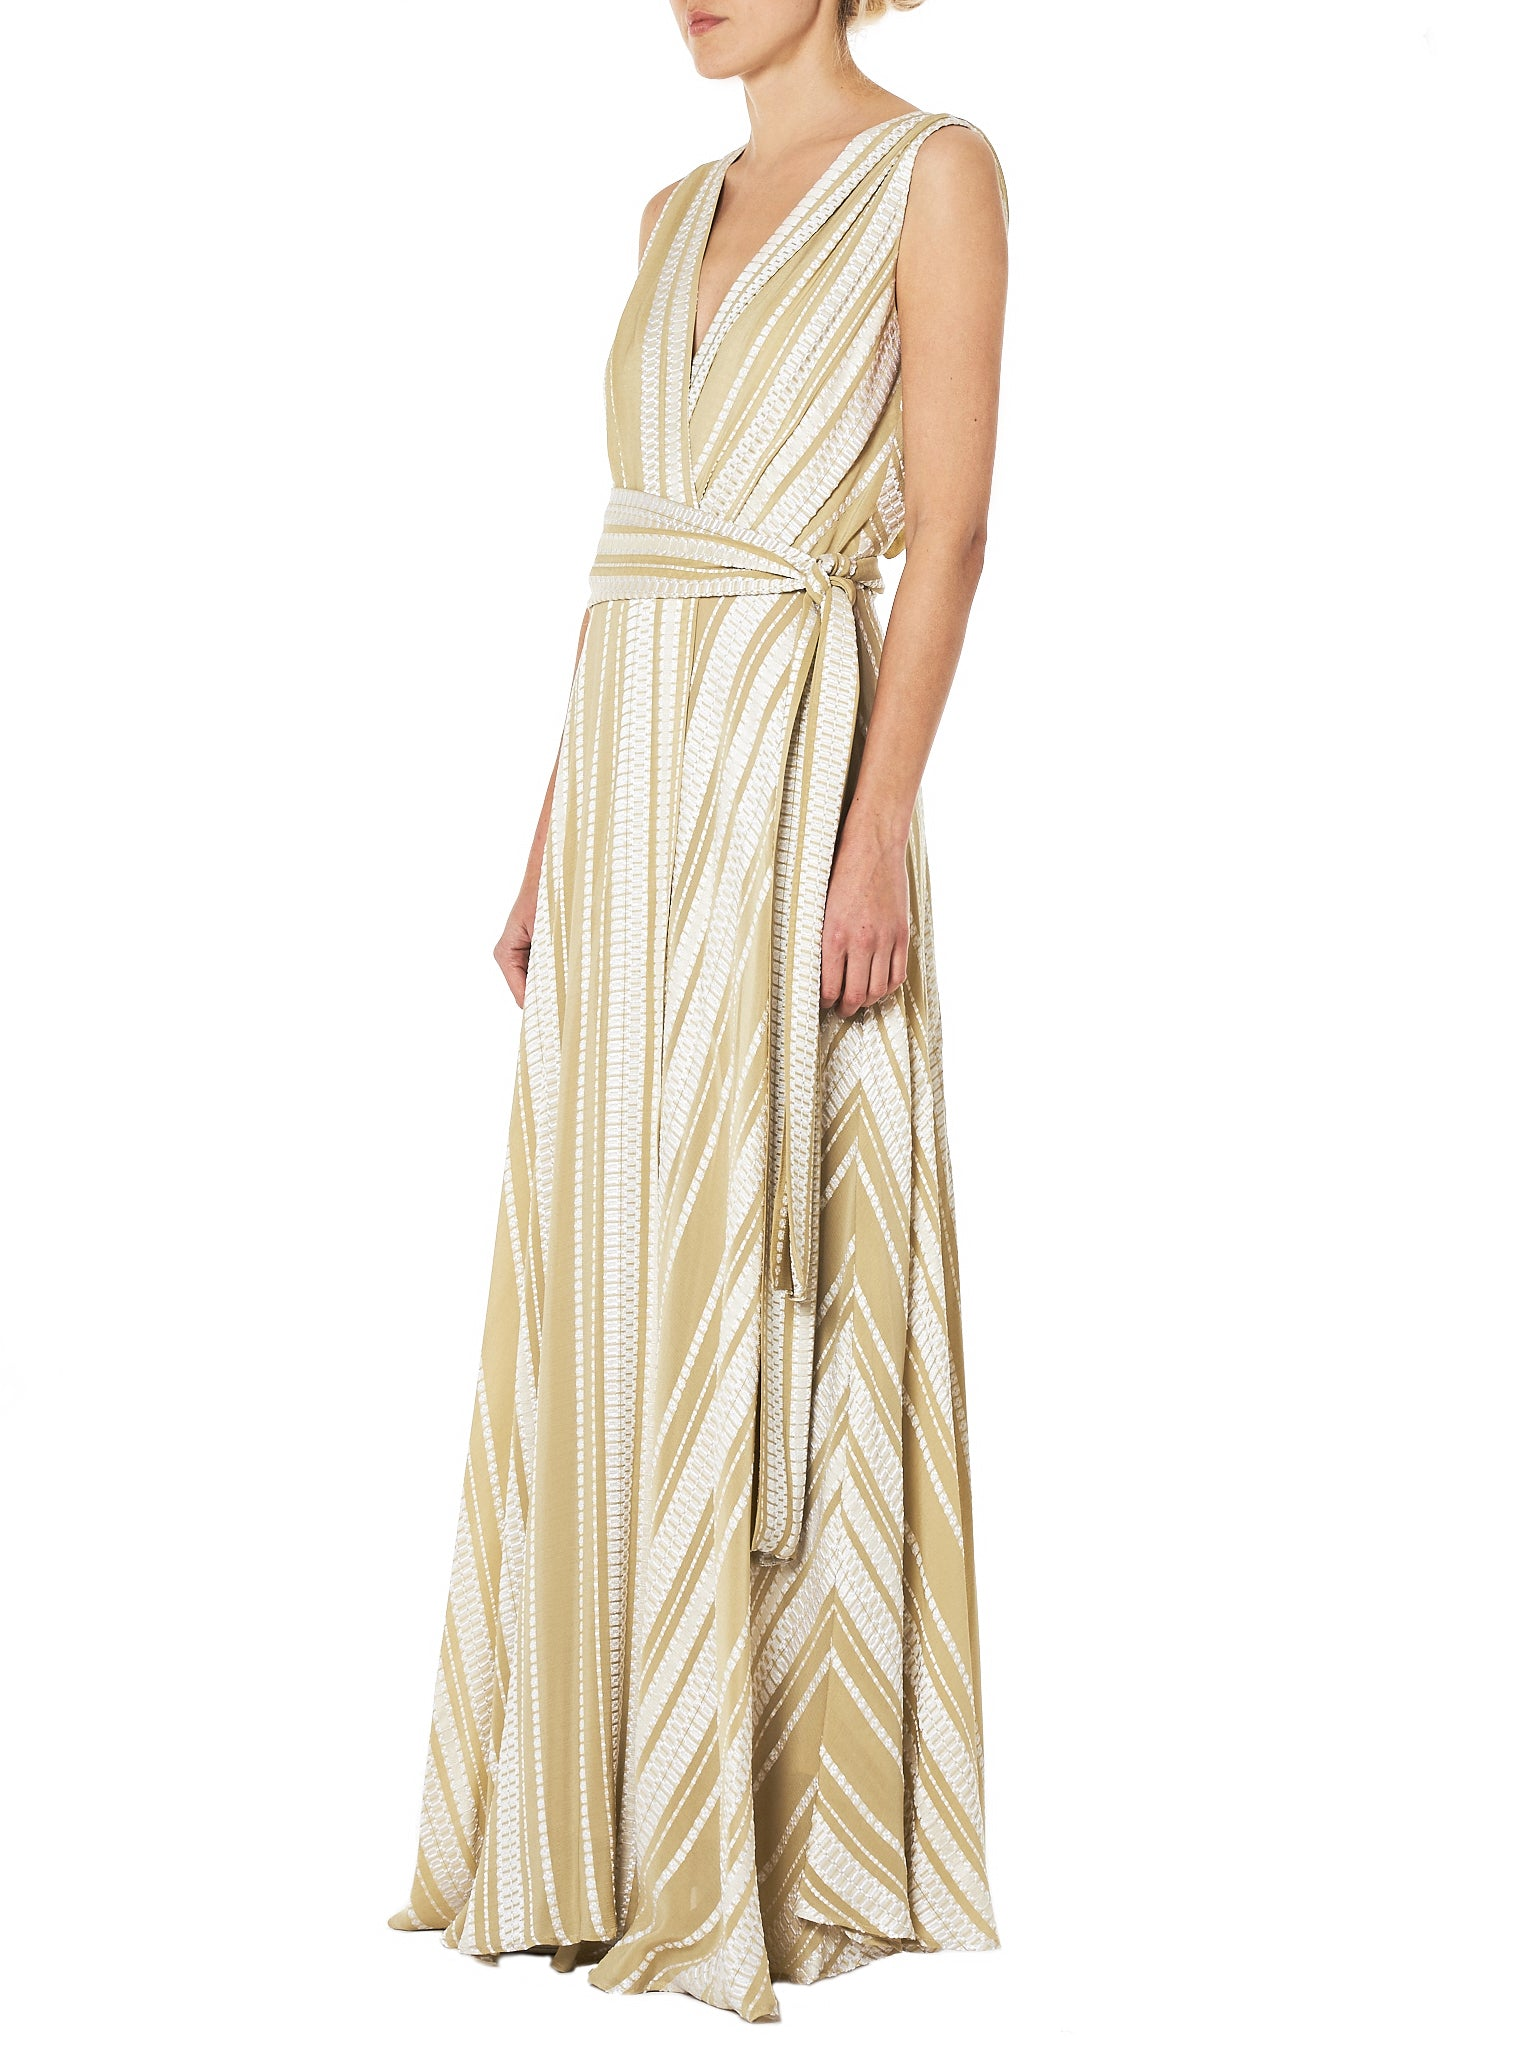 Zeus + Dione Dress - Hlorenzo Side